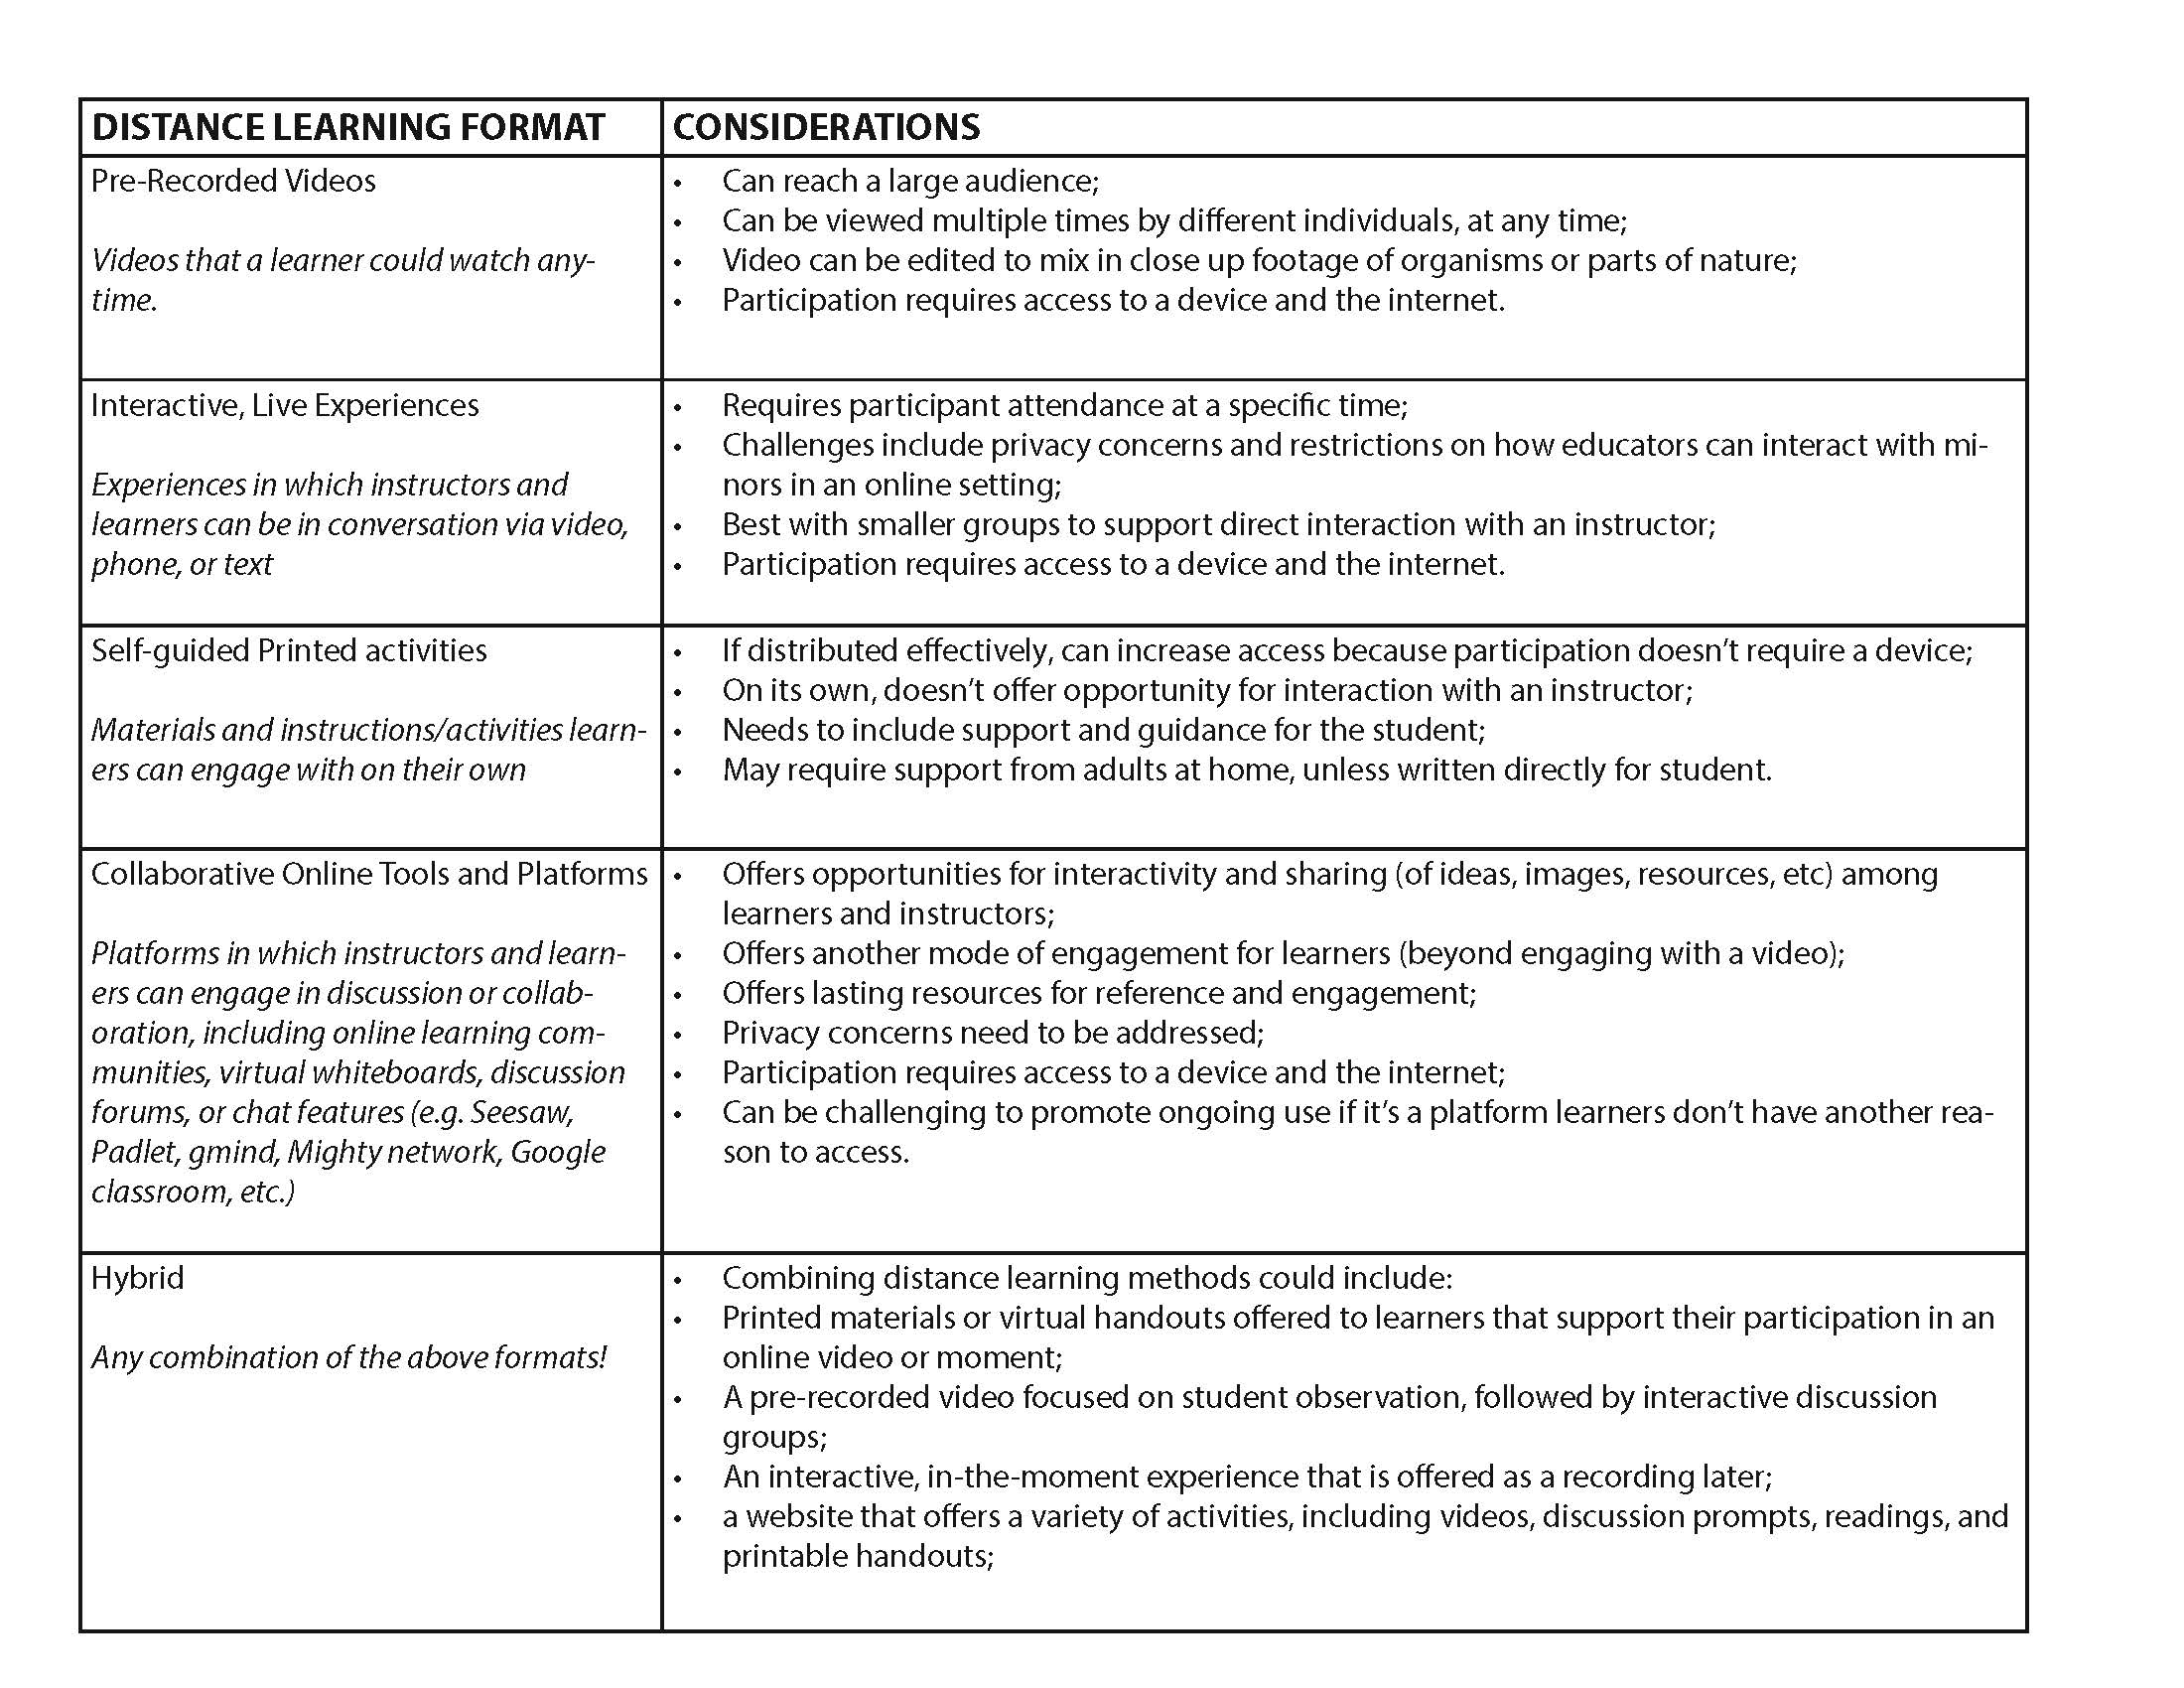 distance learning format table